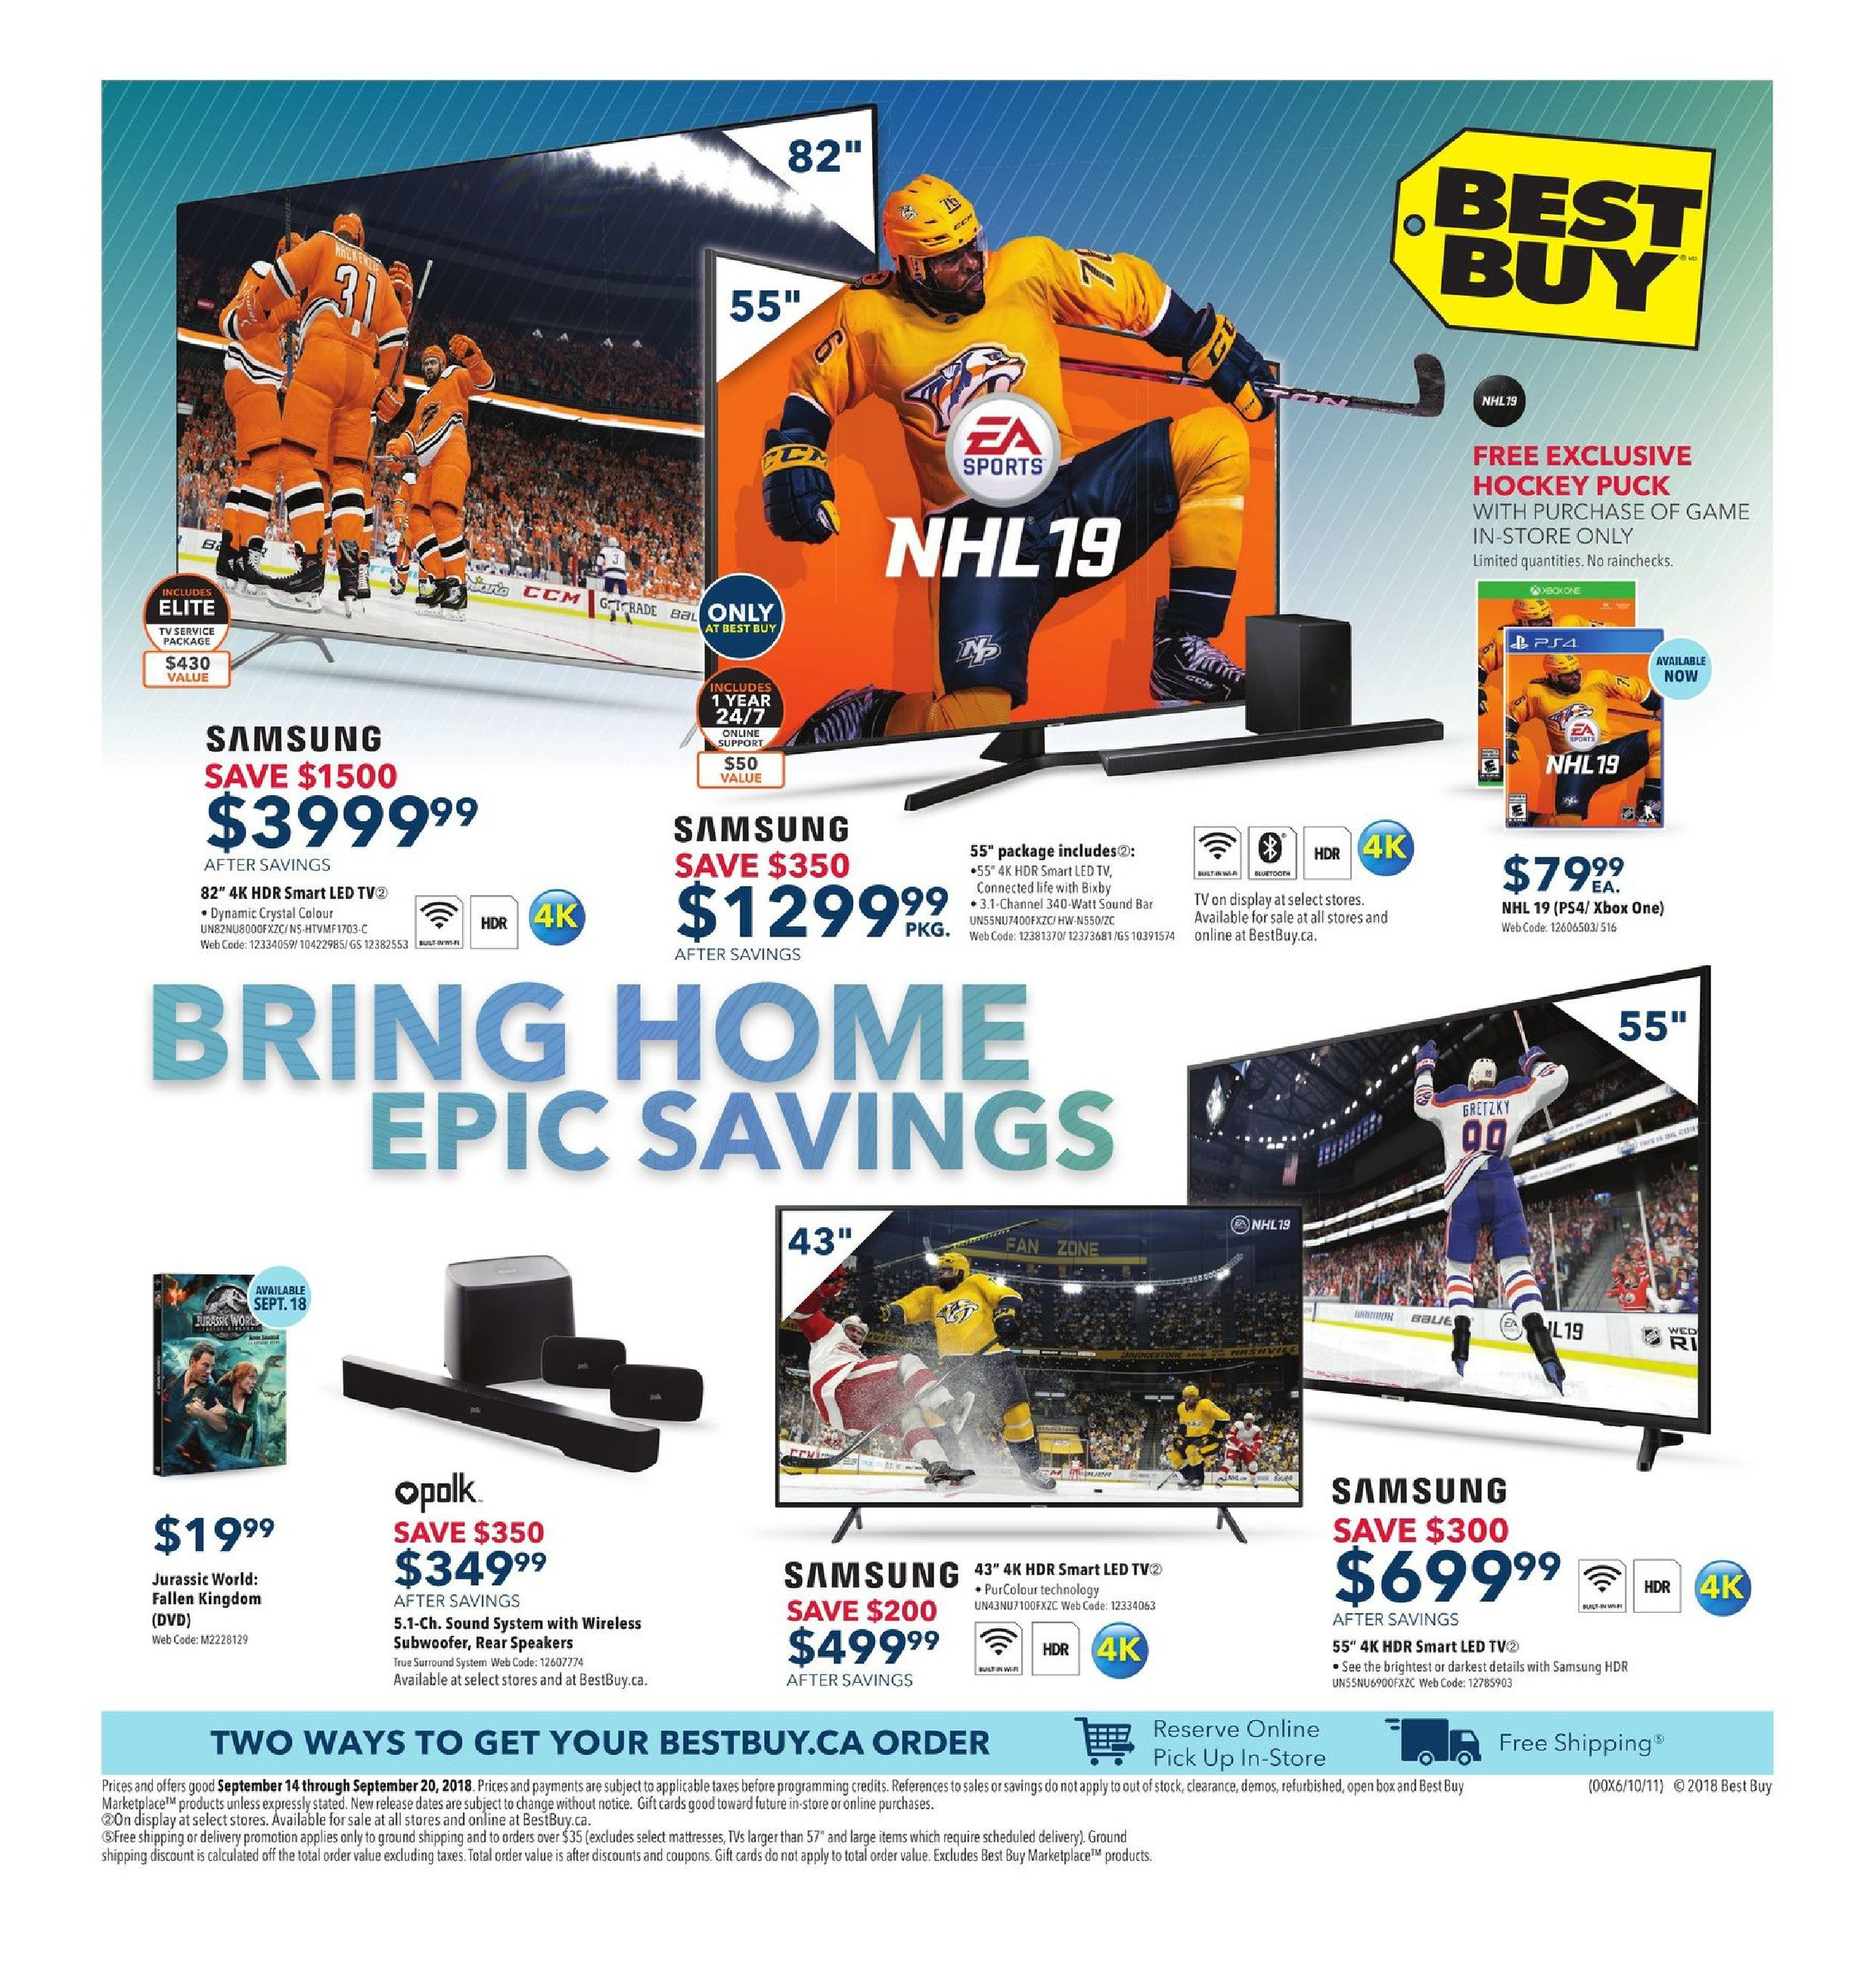 4a85690698 Best Buy Weekly Flyer - Weekly - Bring Home Epic Savings - Sep 14 – 20 -  RedFlagDeals.com